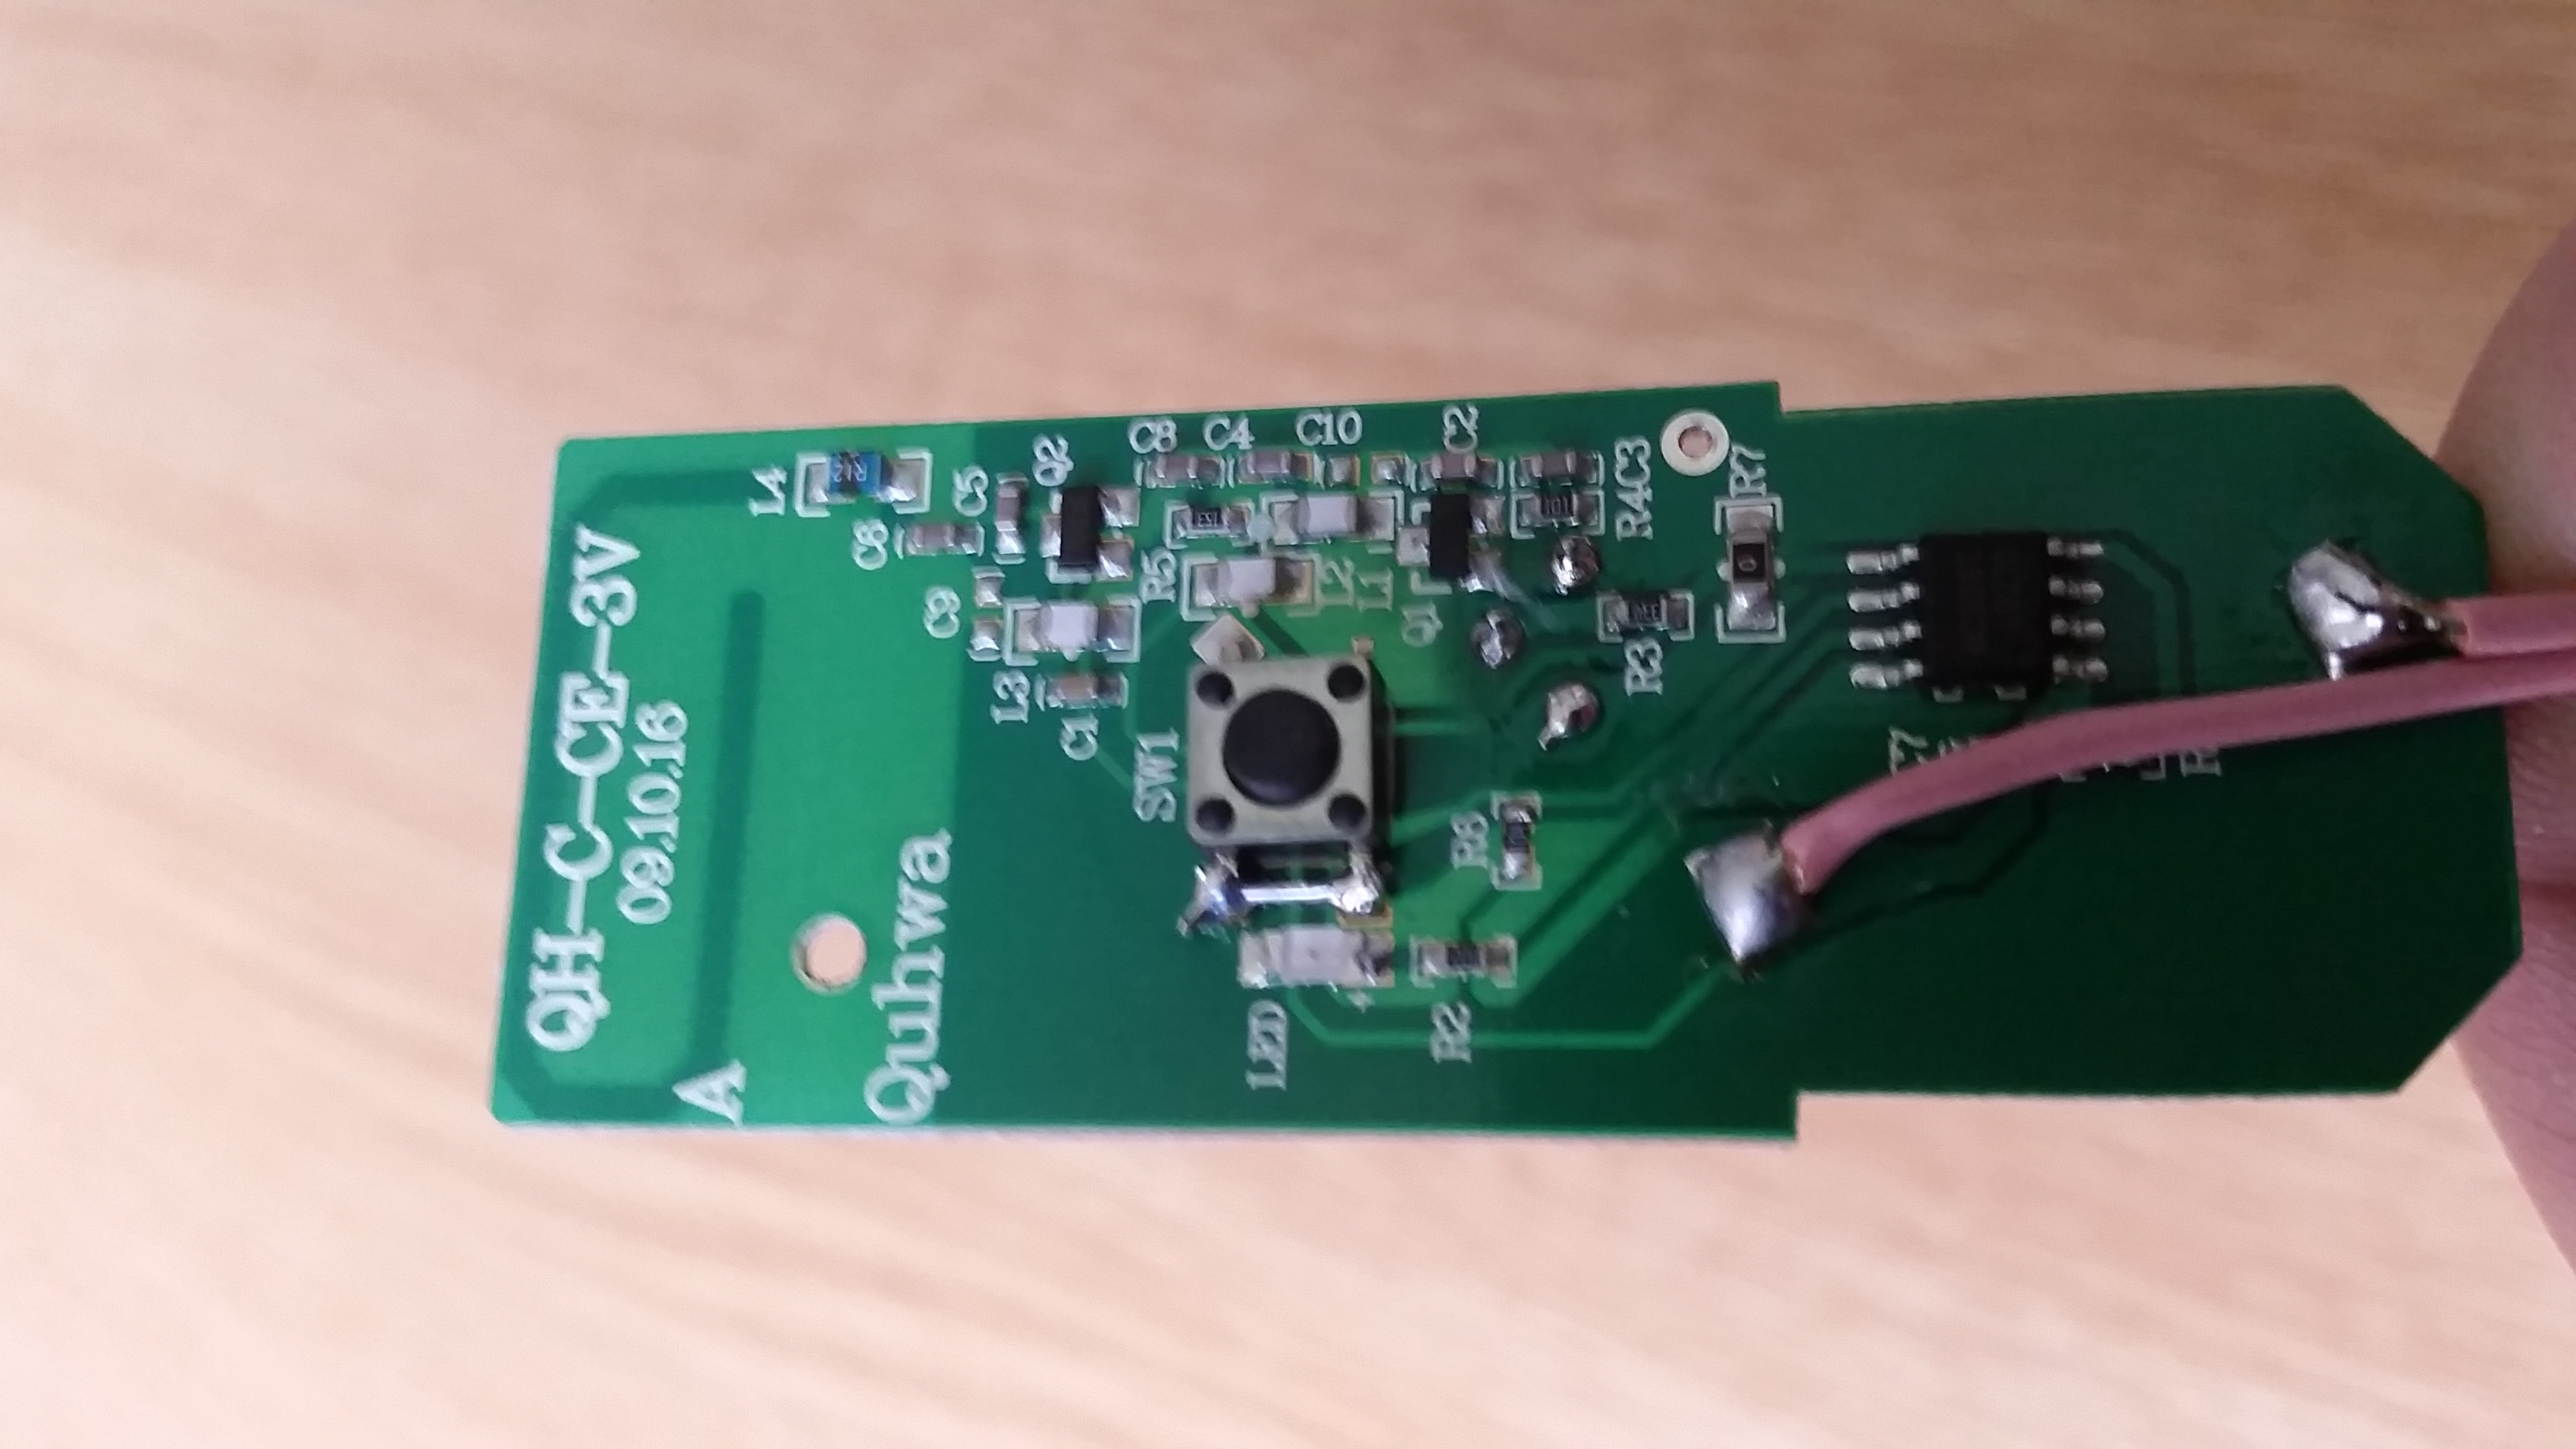 Home Diy Electronic Doorbell Circuit Extending A Wired With Wireless One Proving The Soldered Push Button